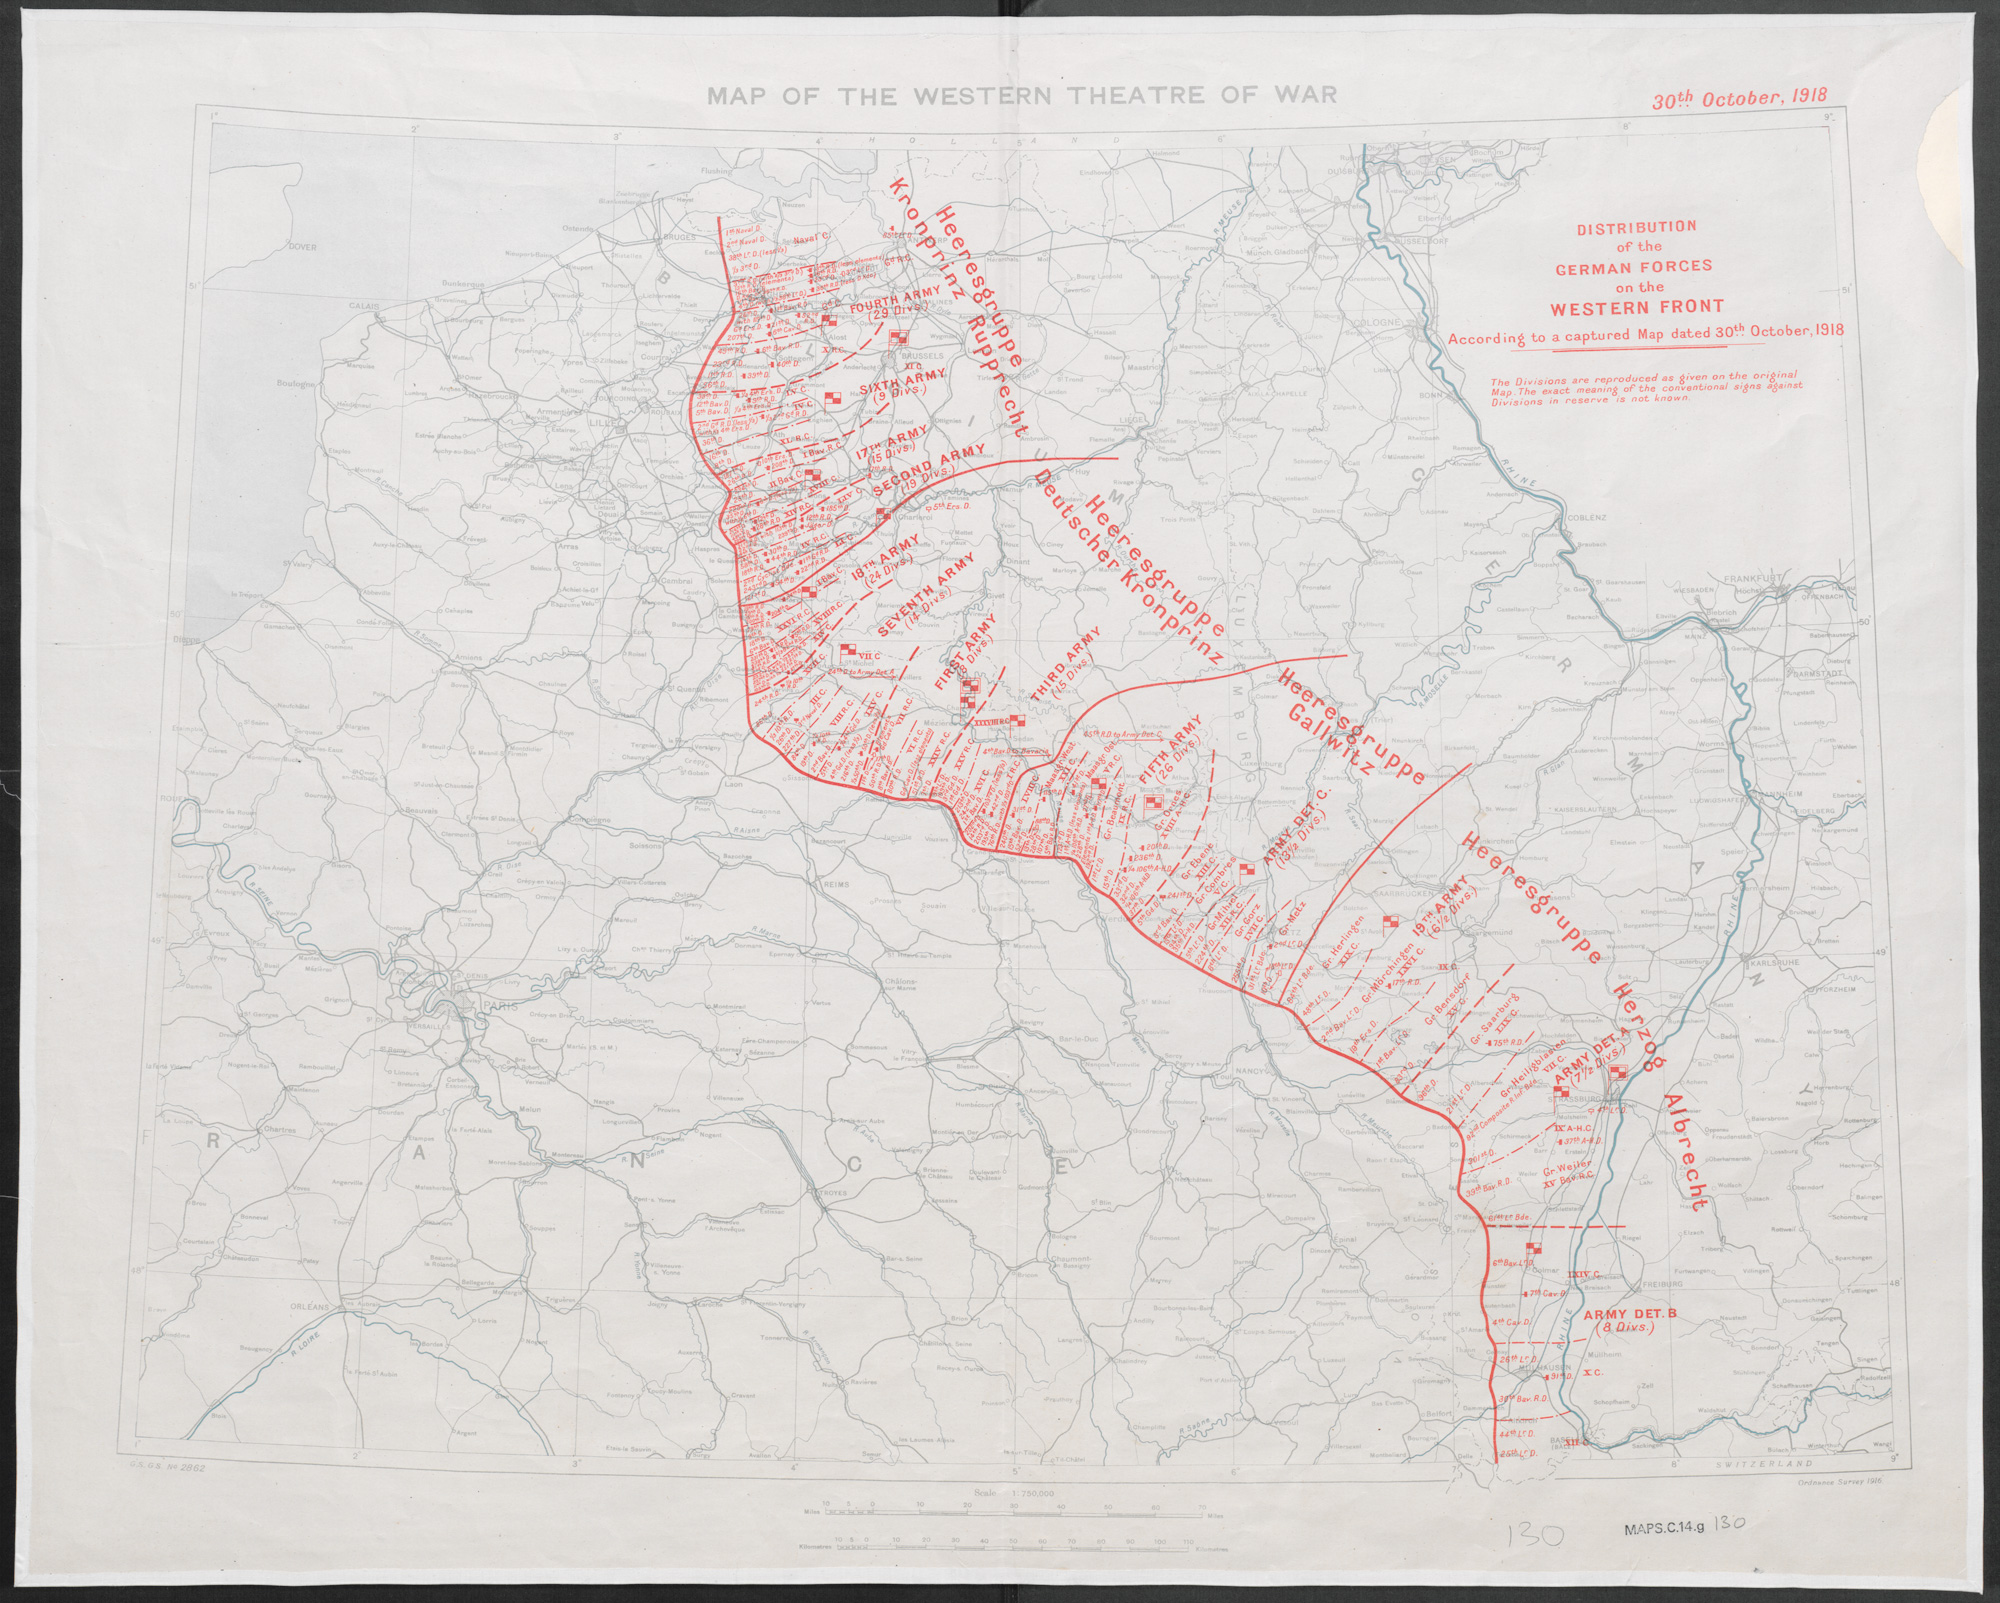 Distribution of German forces on the Western Front according to captured map dates 30th Oct. 1918. 1:750,000.